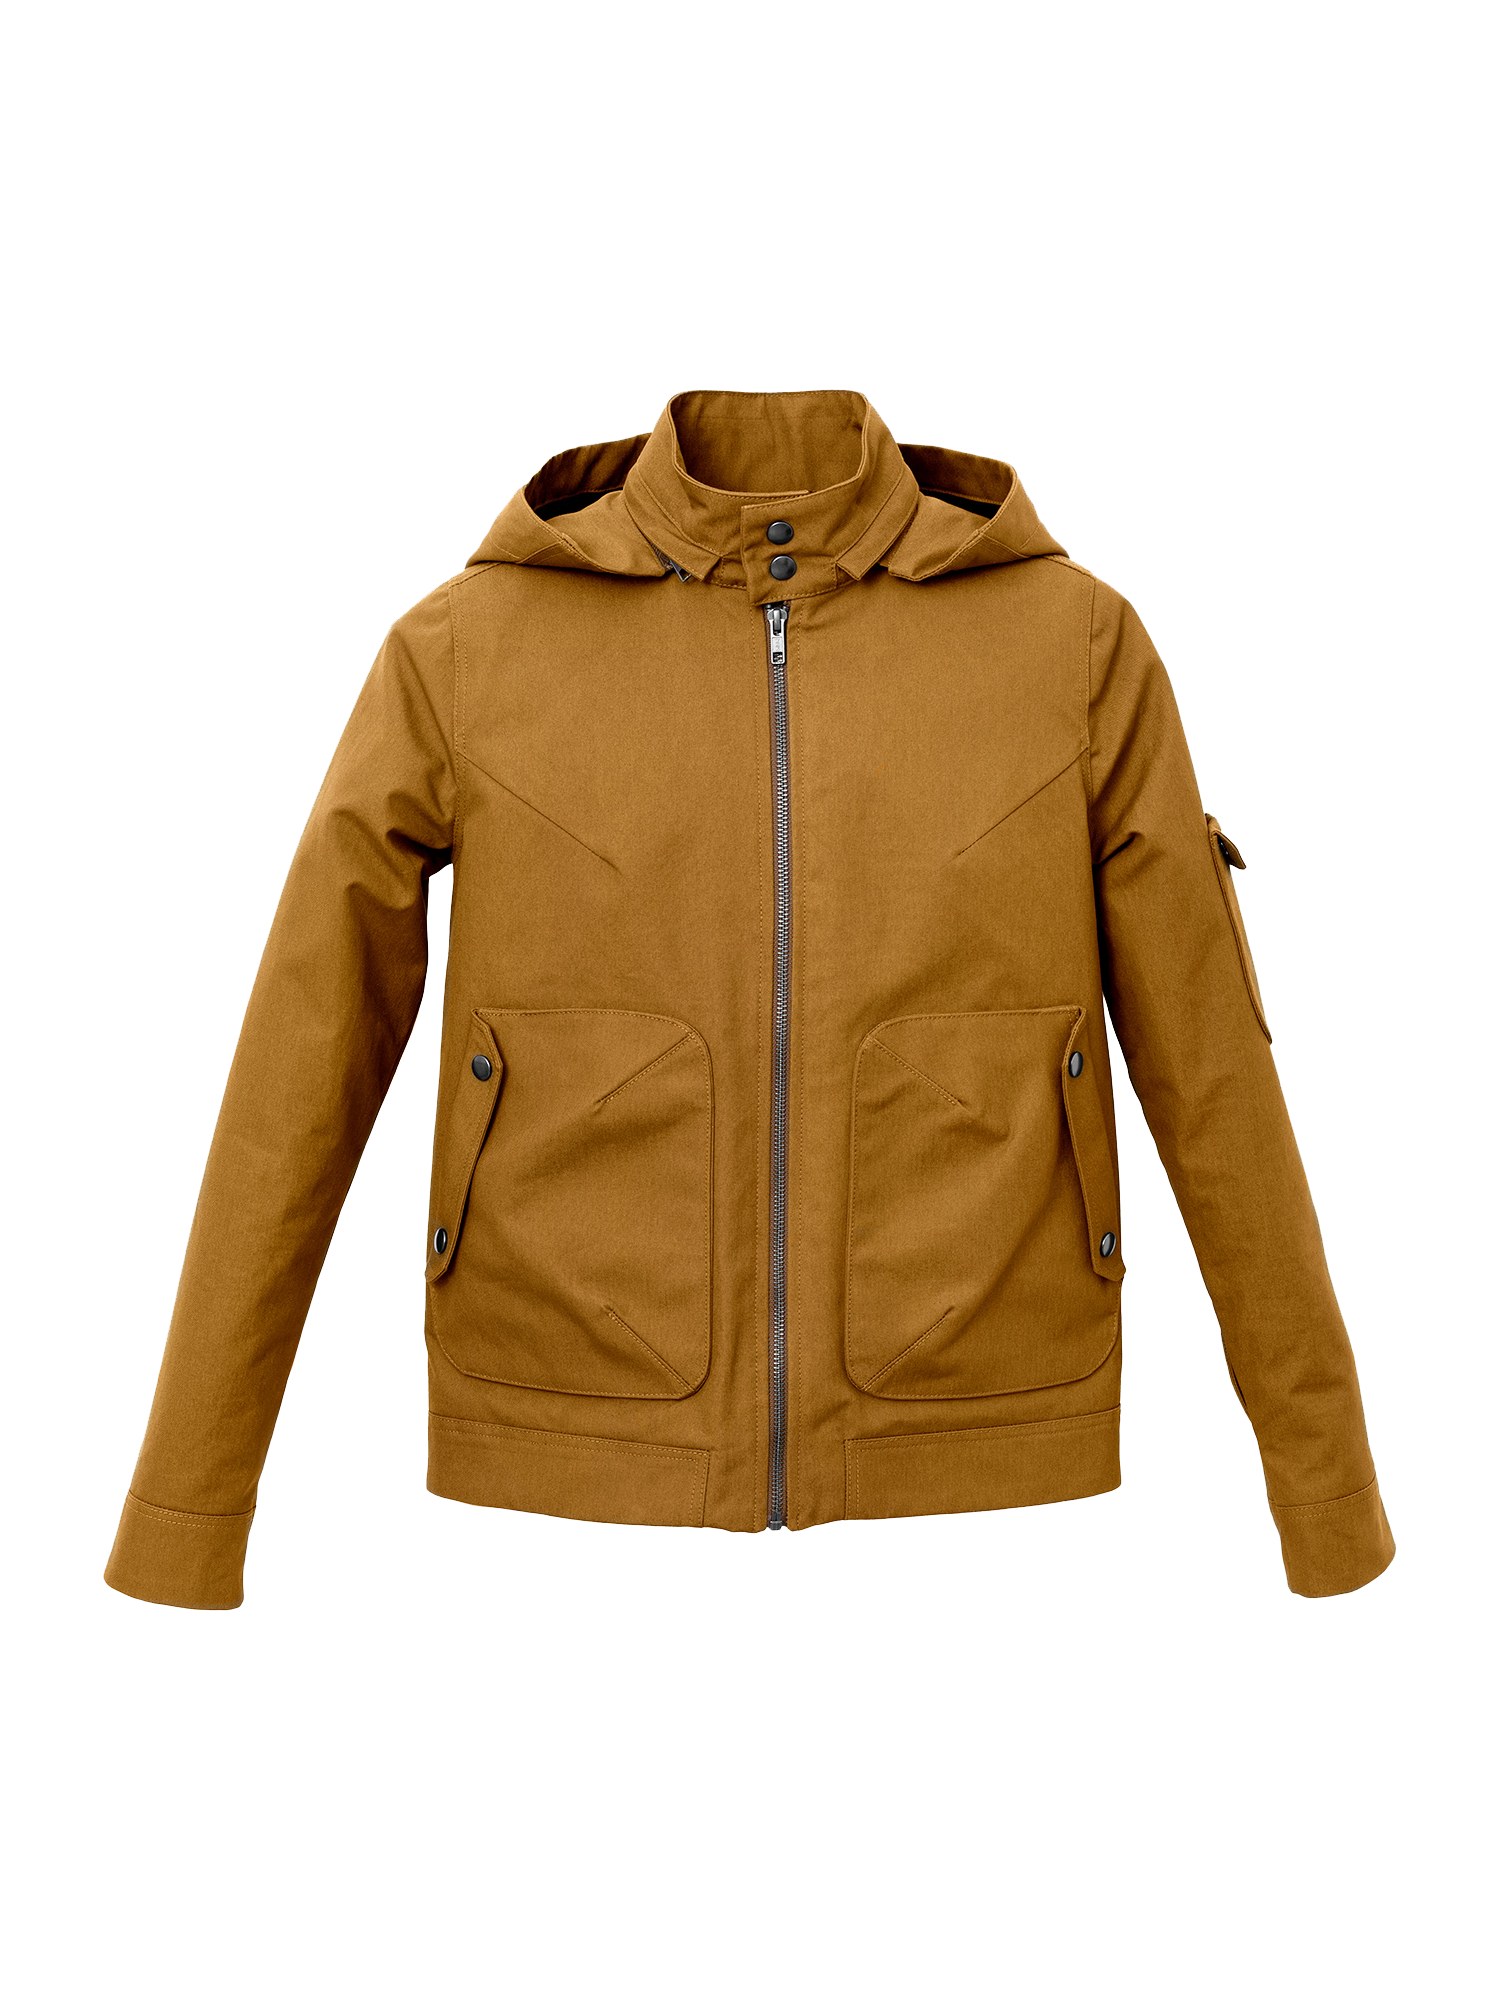 Womens Padded Jacket Q 203 GAIA